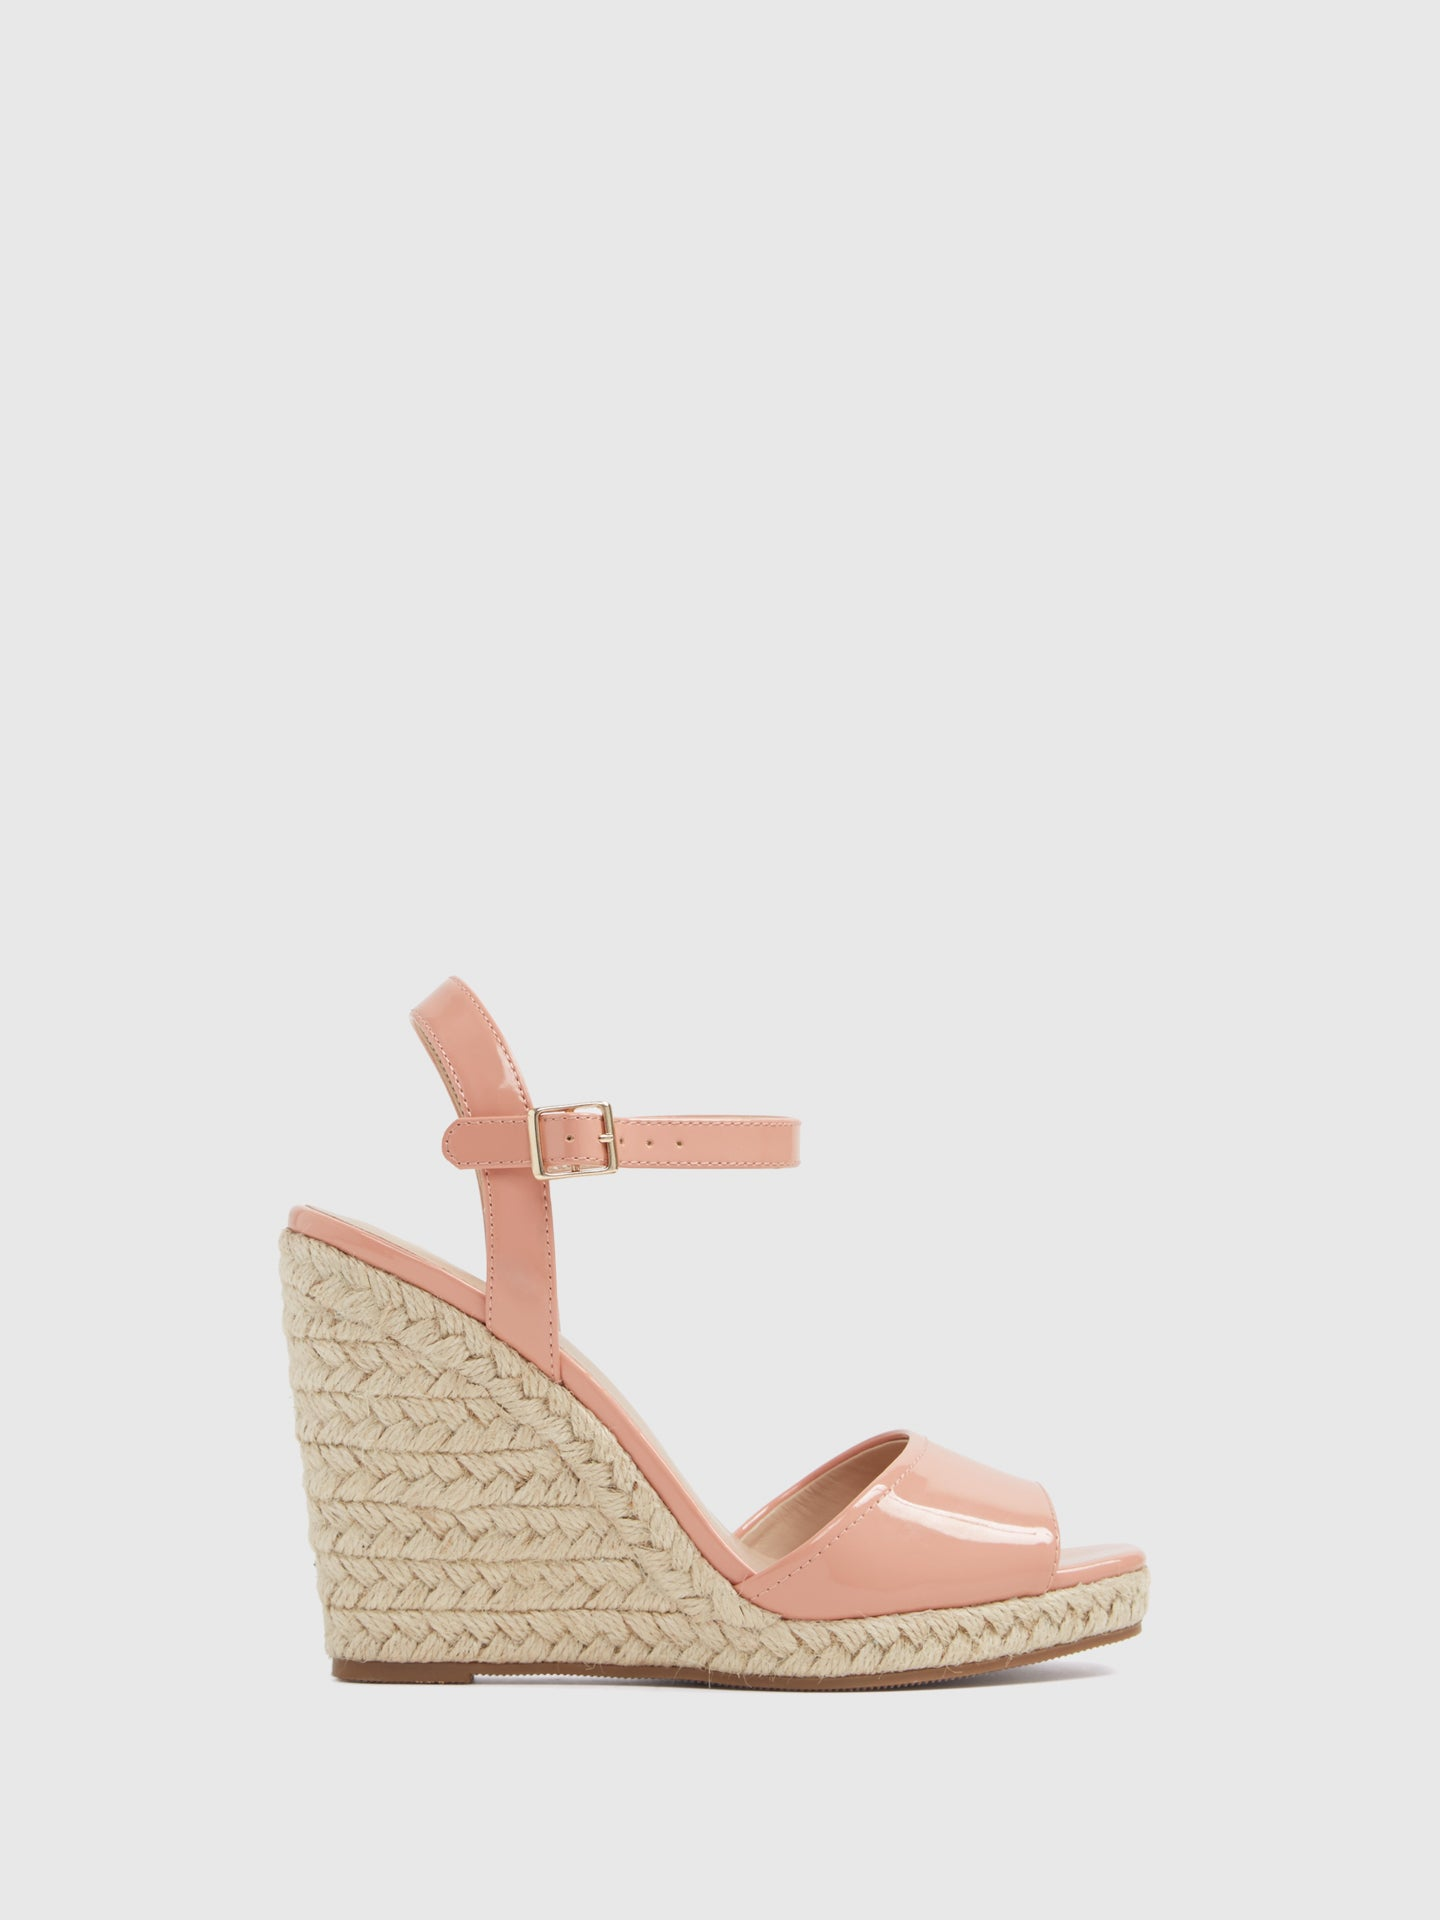 Aldo LightPink Wedge Sandals